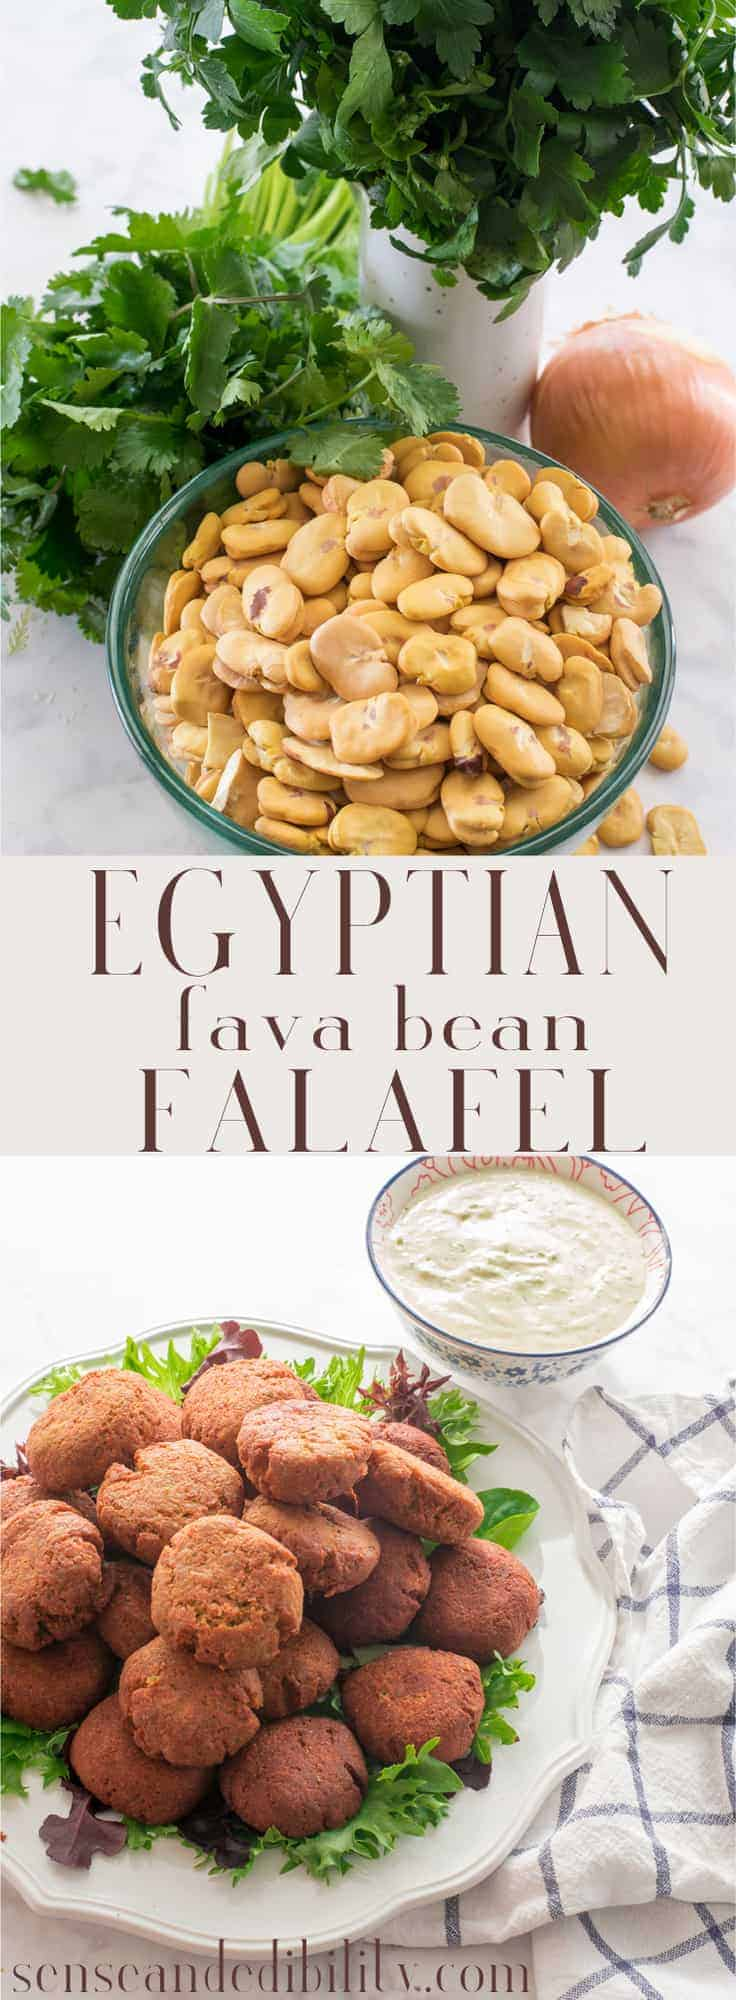 Egyptian falafel, made with fava beans, is often overlooked. This flavorful, filling vegetarian dish deserves a place on your table. #falafel #favabeans #arabfood #fritters via @ediblesense